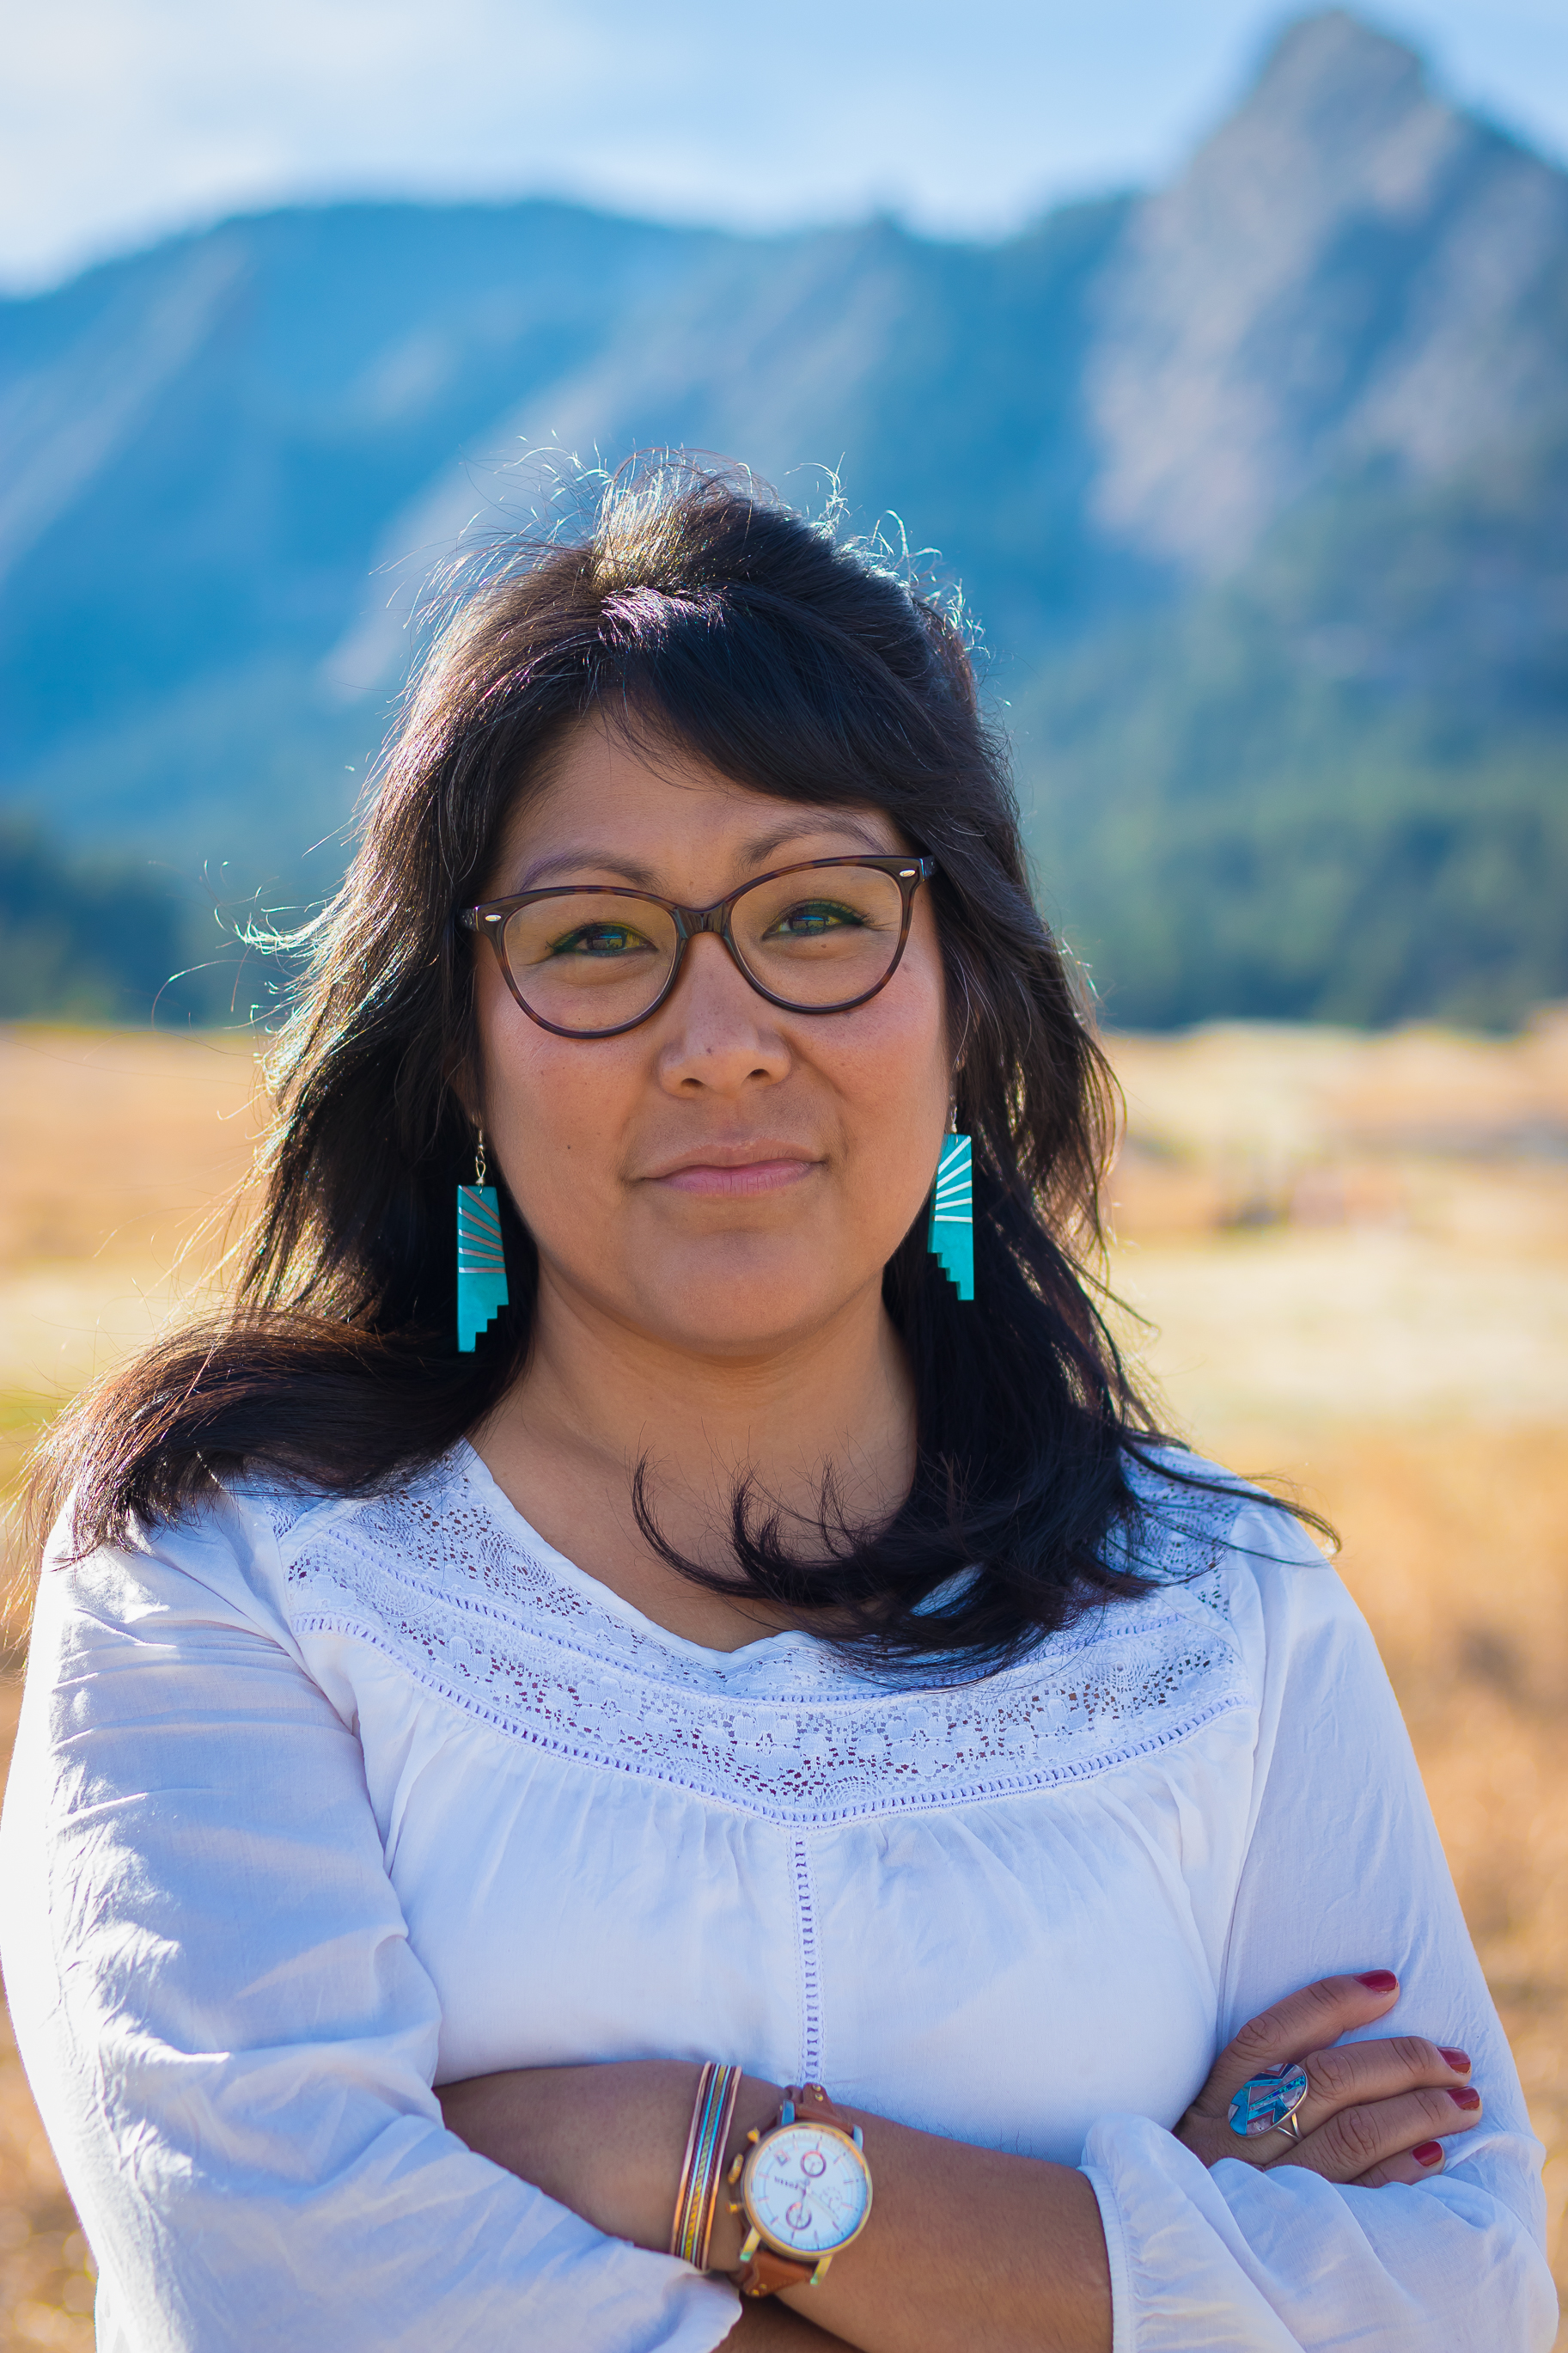 Jaylyn Gough - Founder, Native Women's Wilderness